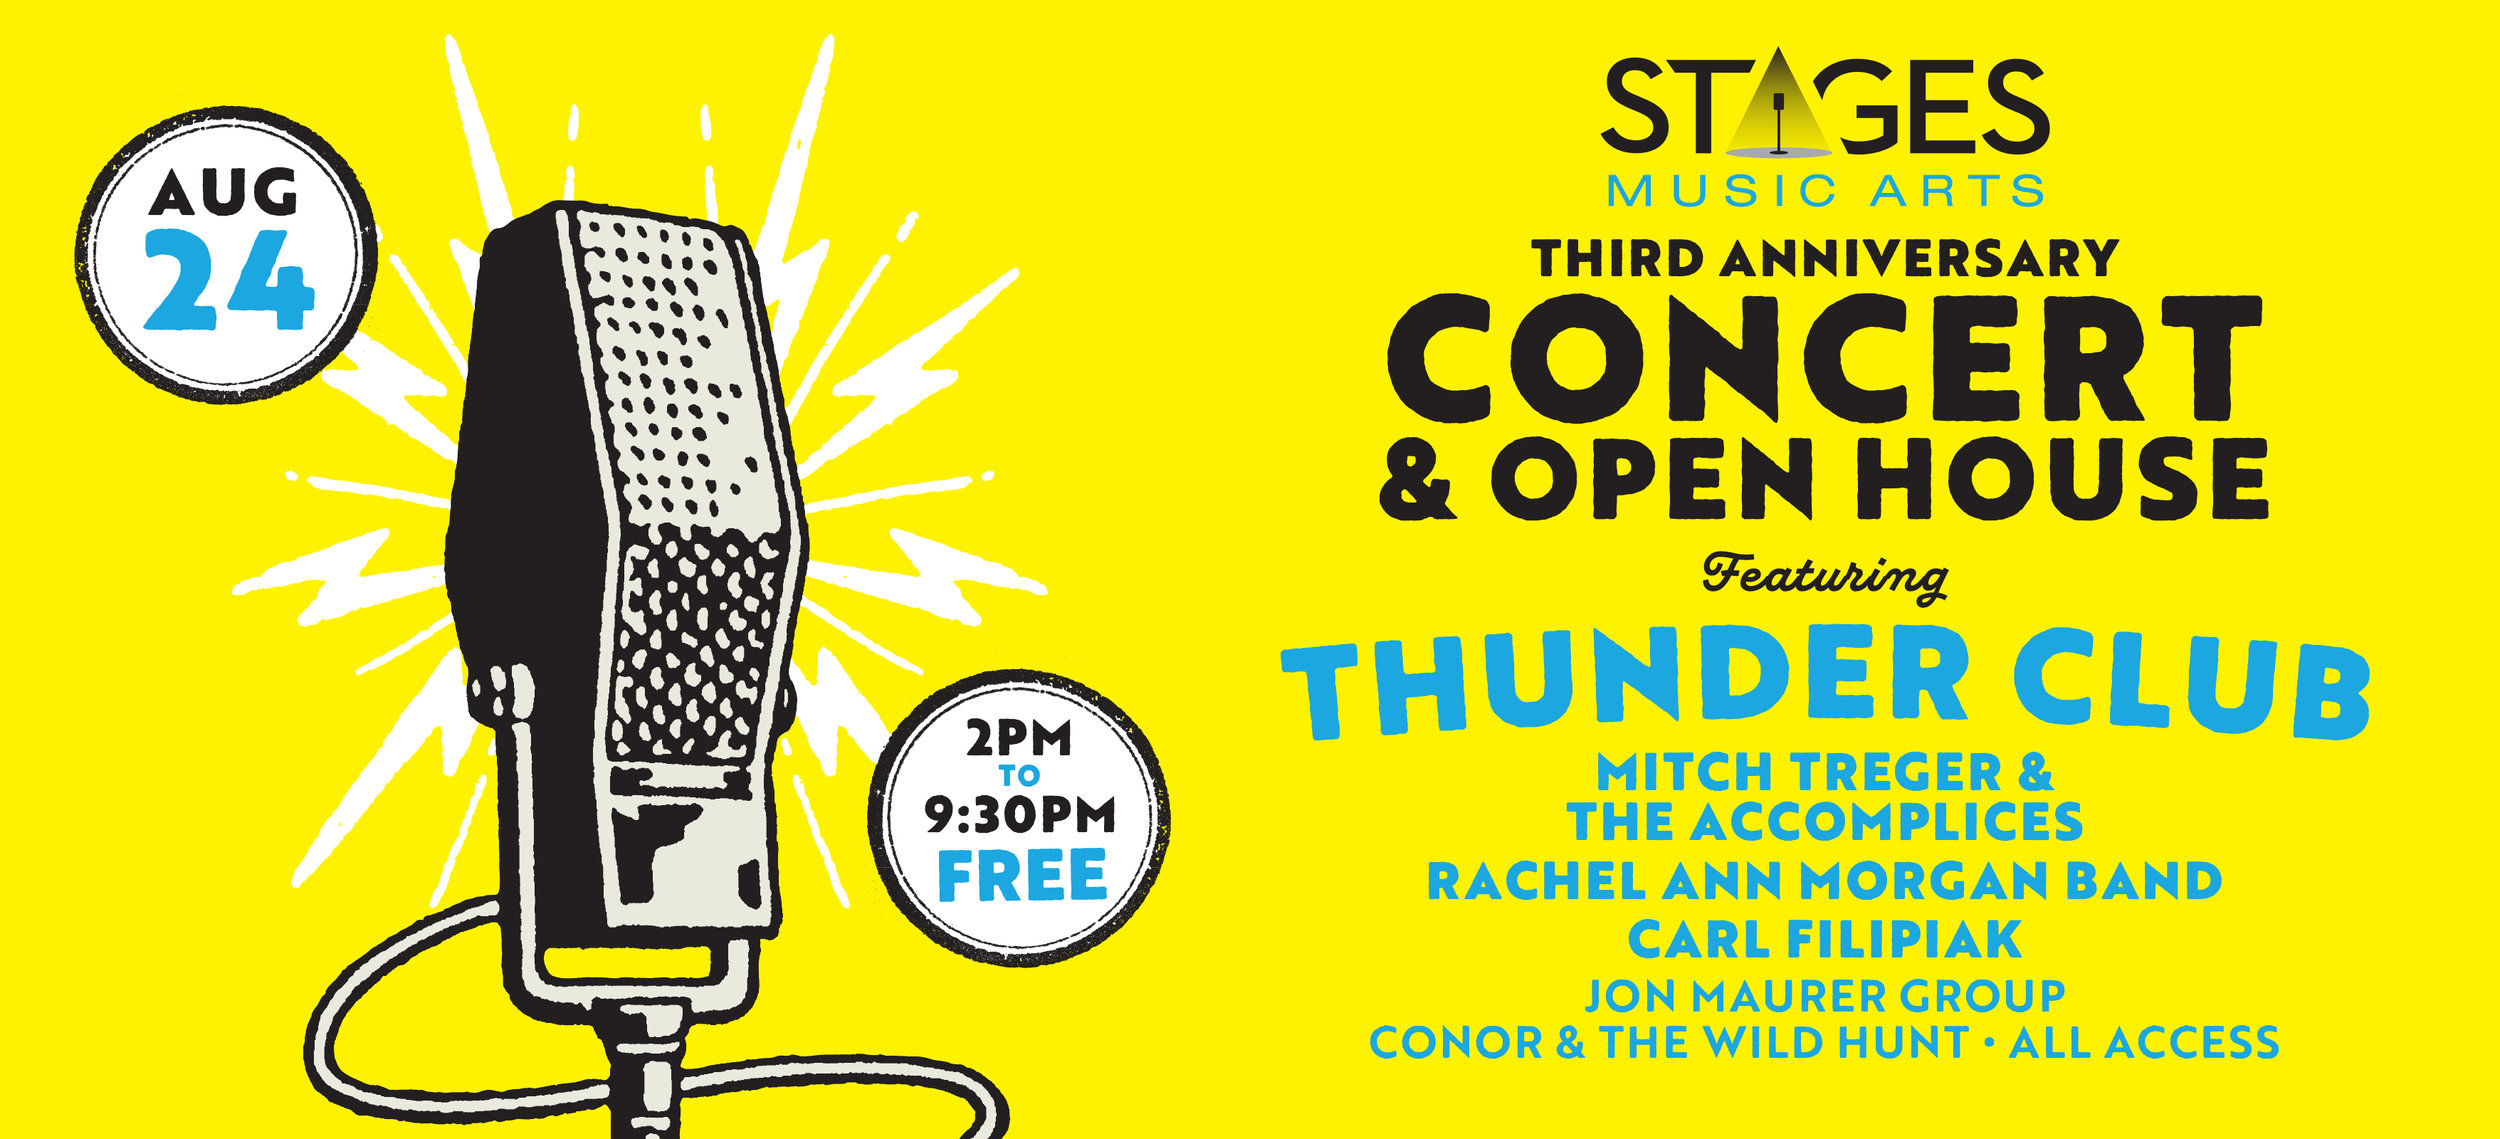 3rd Anniversary Concert & Open House - Join us as we celebrate and thank our music community for 3 rockin' years in business with a FREE concert & open house!